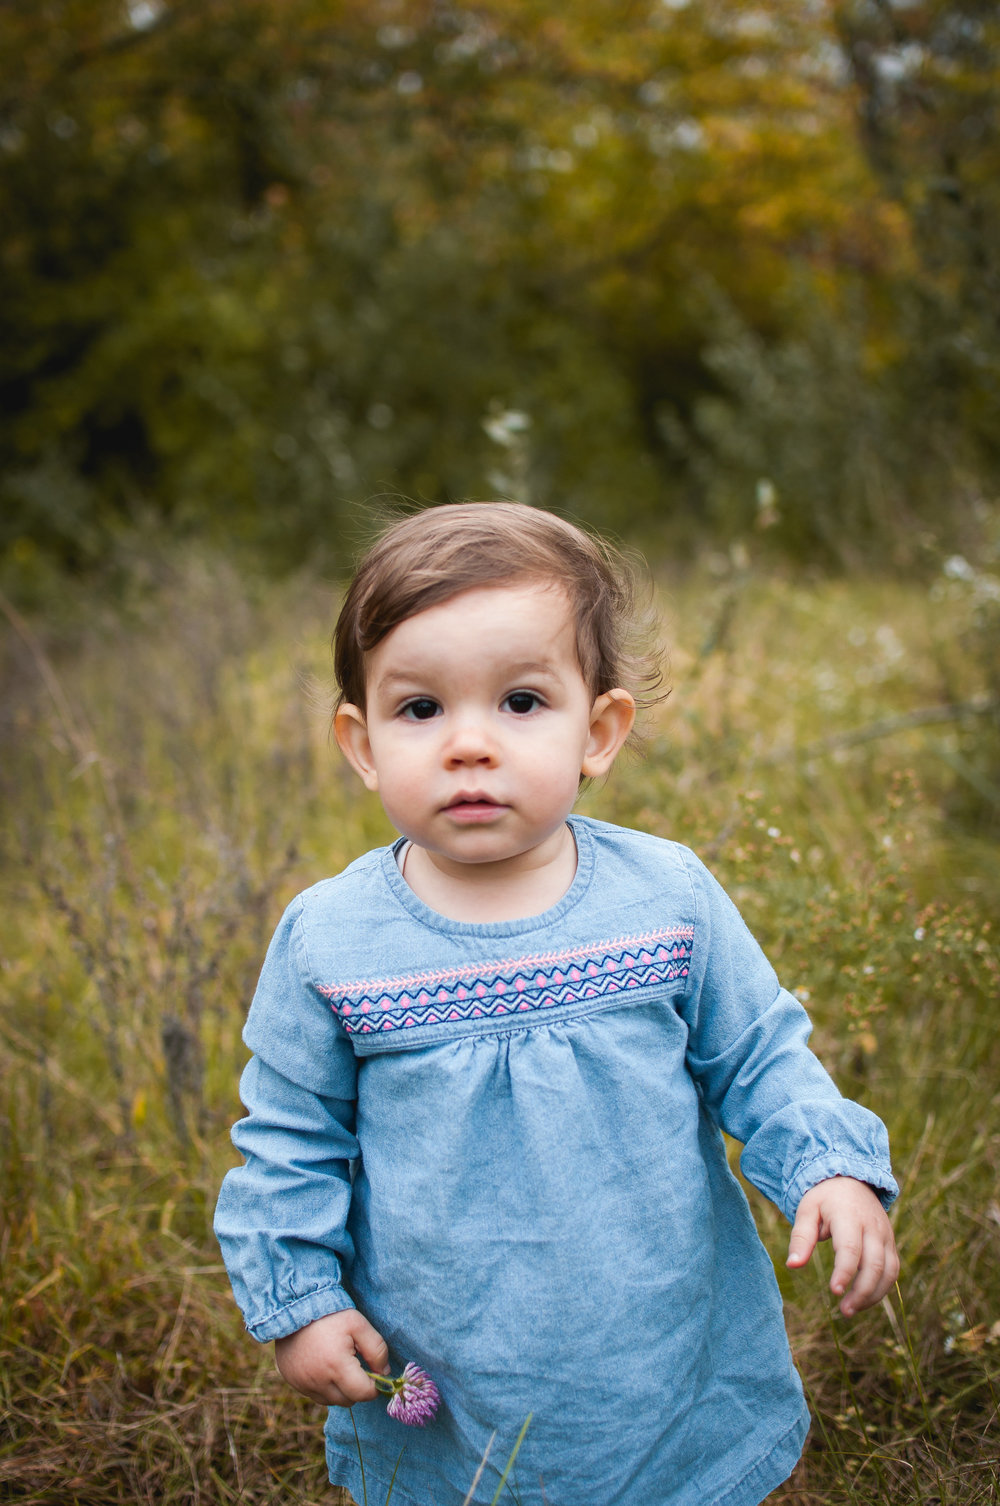 Child stands in field holding a flower during family photography session in Peoria Illinois area.